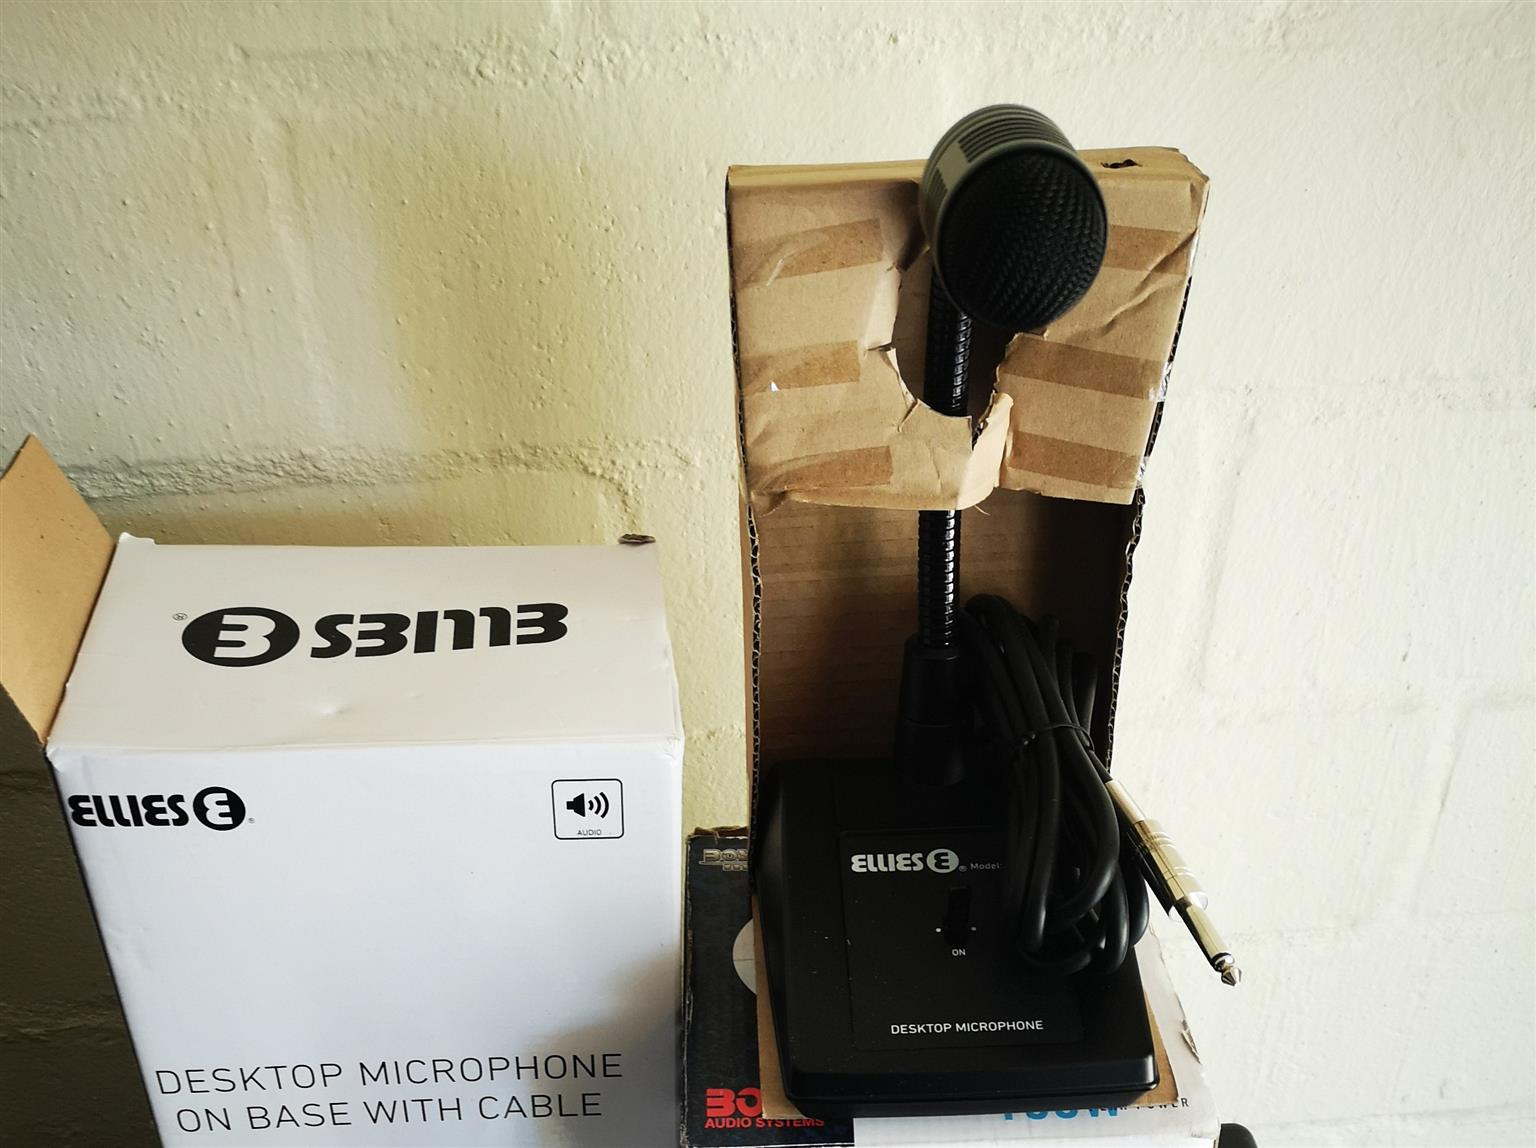 BRAND NEW Ellies Desktop microphone on base with cable